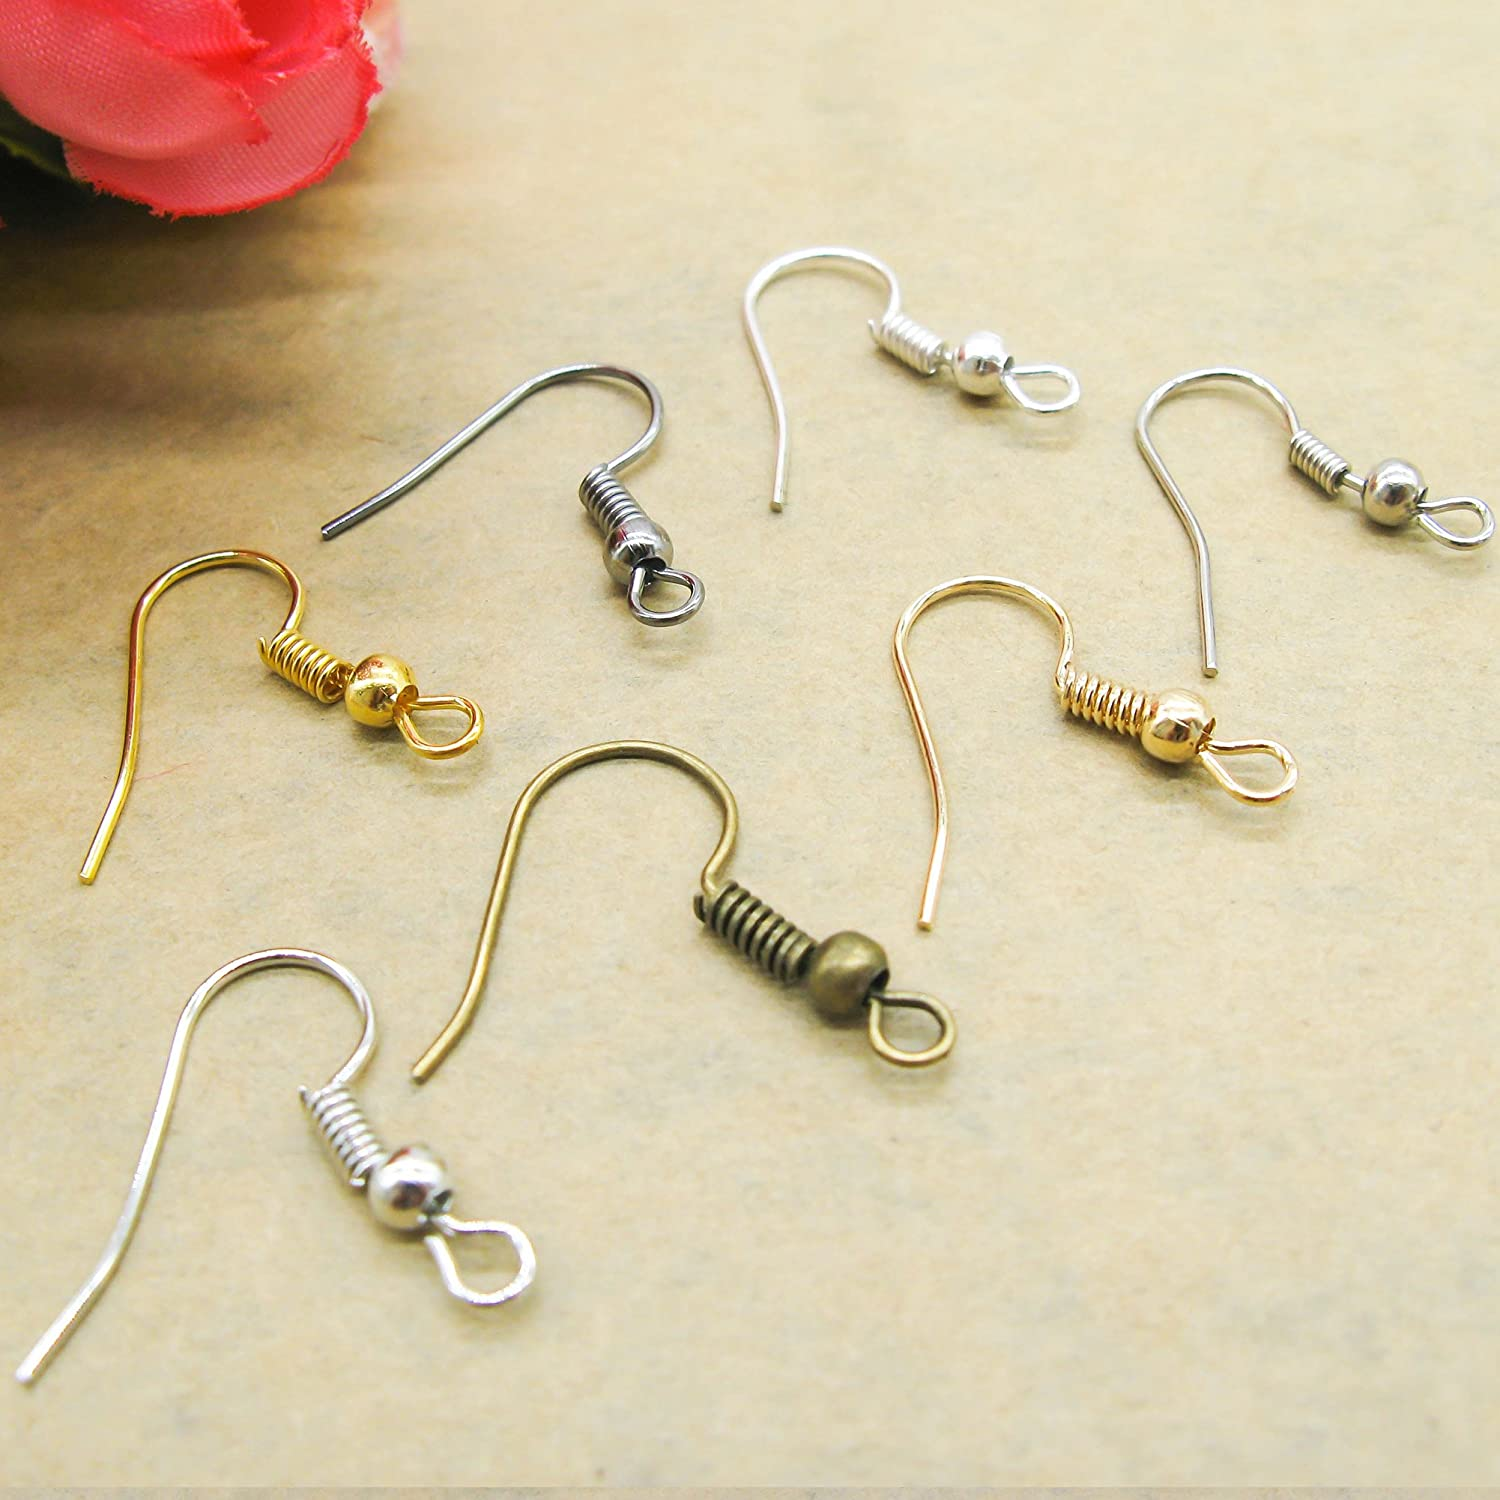 TOAOB 700pcs Earring Hooks Ear Wires 18MM Surgical Steel Hypo Allergenic with Ball and Coil Mixed Color